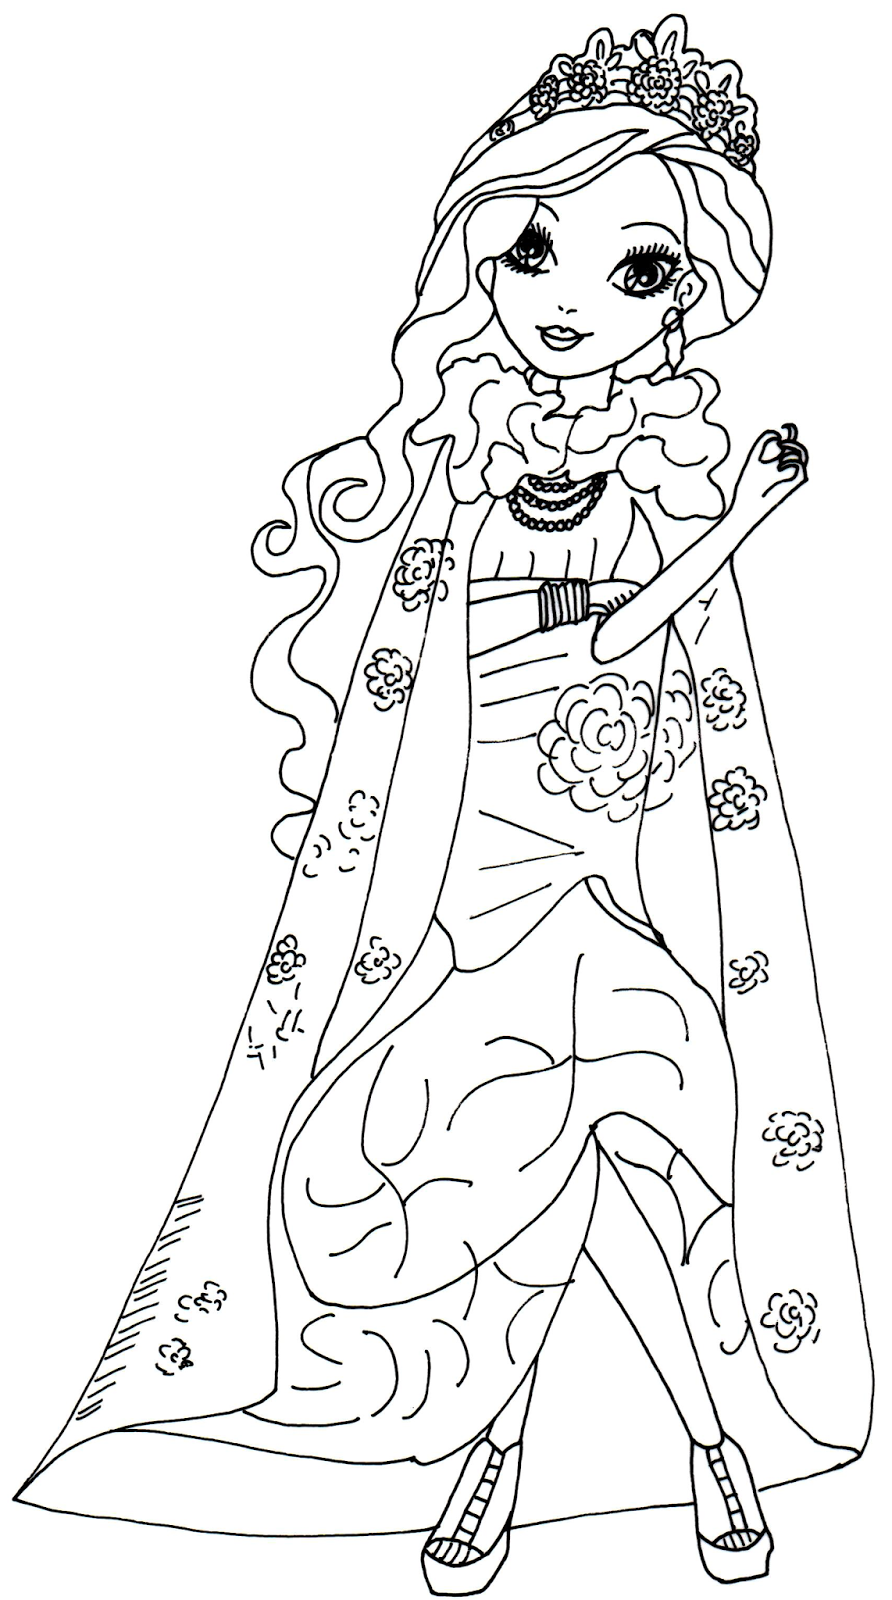 Free Printable Ever After High Coloring Pages: Briar ...